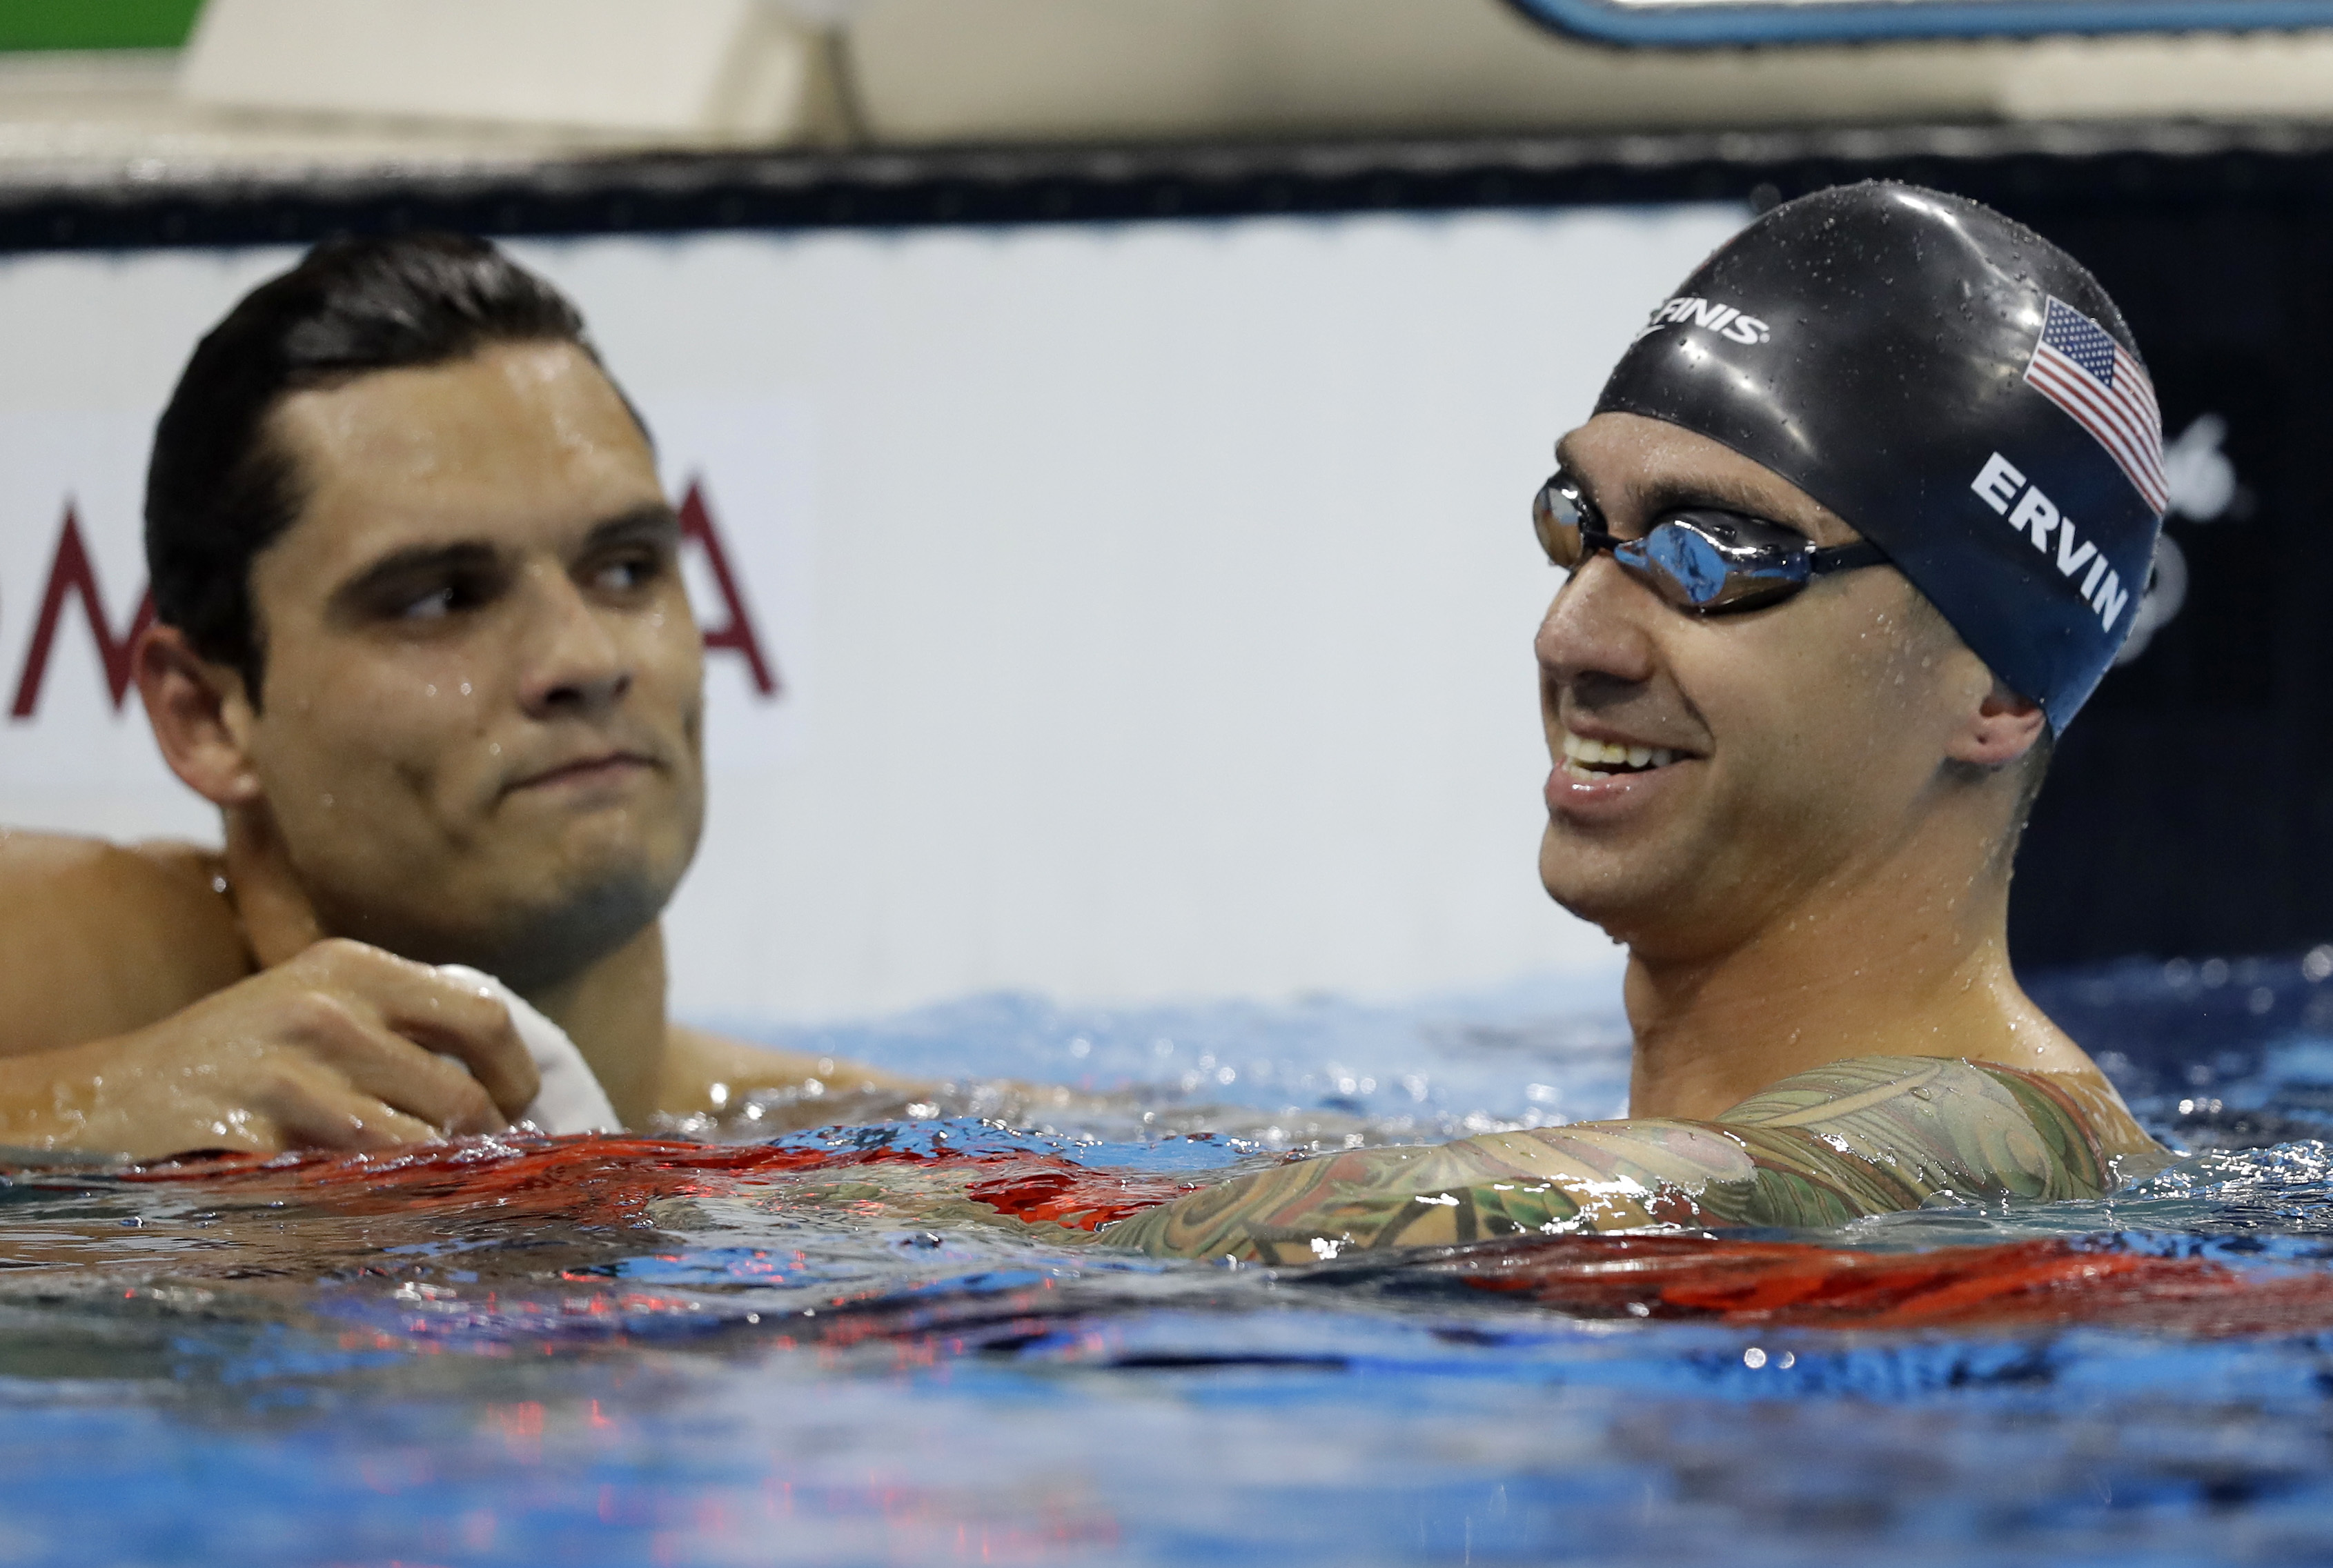 United States' Anthony Ervin, right, smiles as France's Florent Manaudou looks on after the men's 50-meter freestyle final during the swimming competitions at the 2016 Summer Olympics, Friday, Aug. 12, 2016, in Rio de Janeiro, Brazil. (AP Photo/Michael So